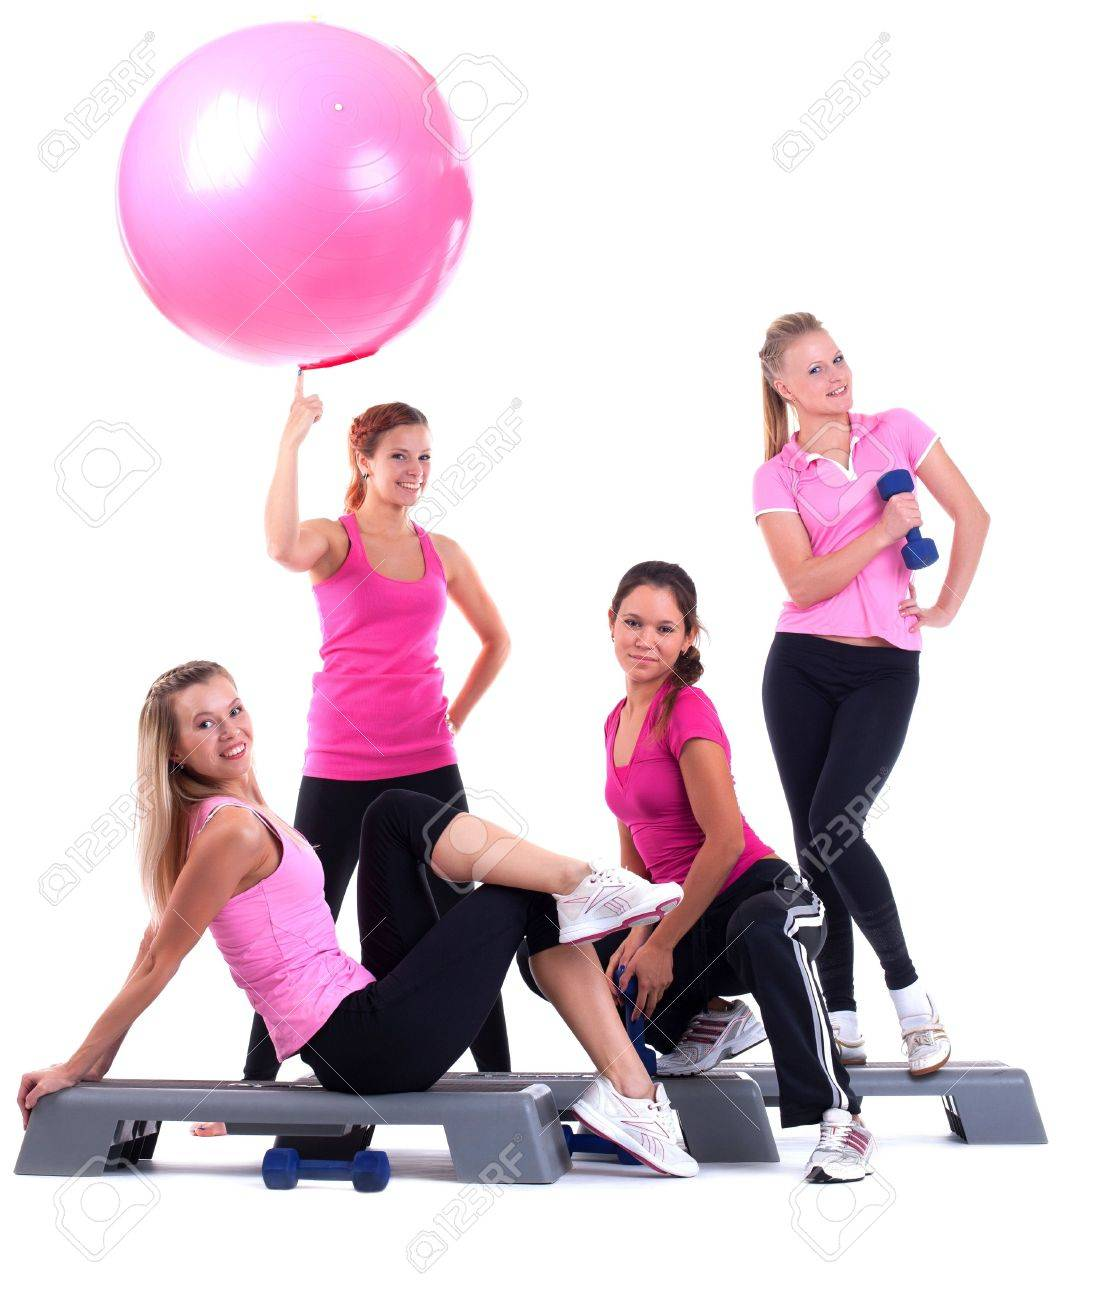 young group women fitness instructor on stepper with accessories isolated - 15427223